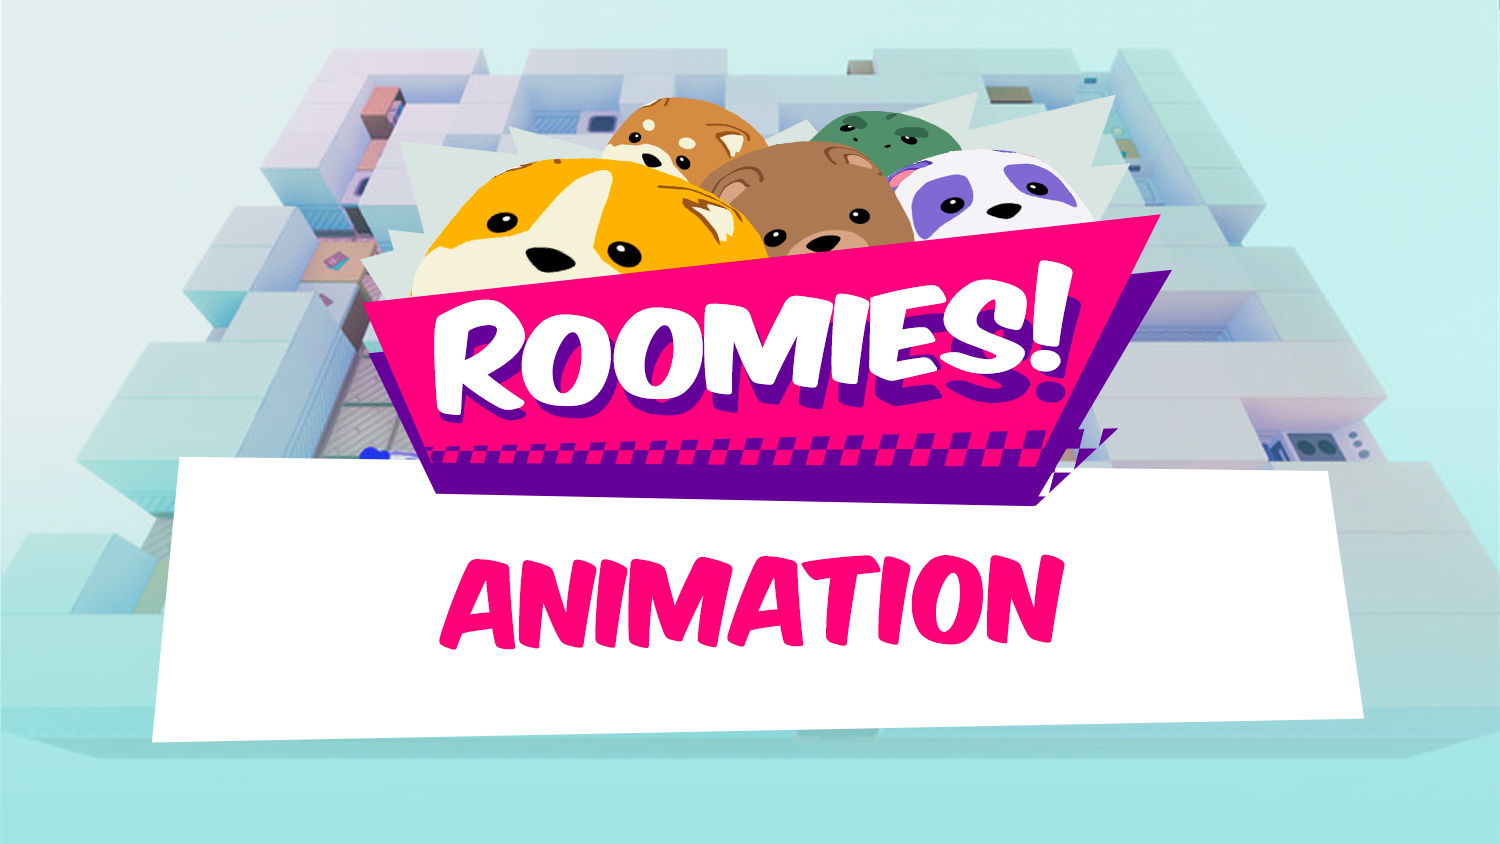 Mesh Deformation and Animation Adventure - Roomies by 3djon